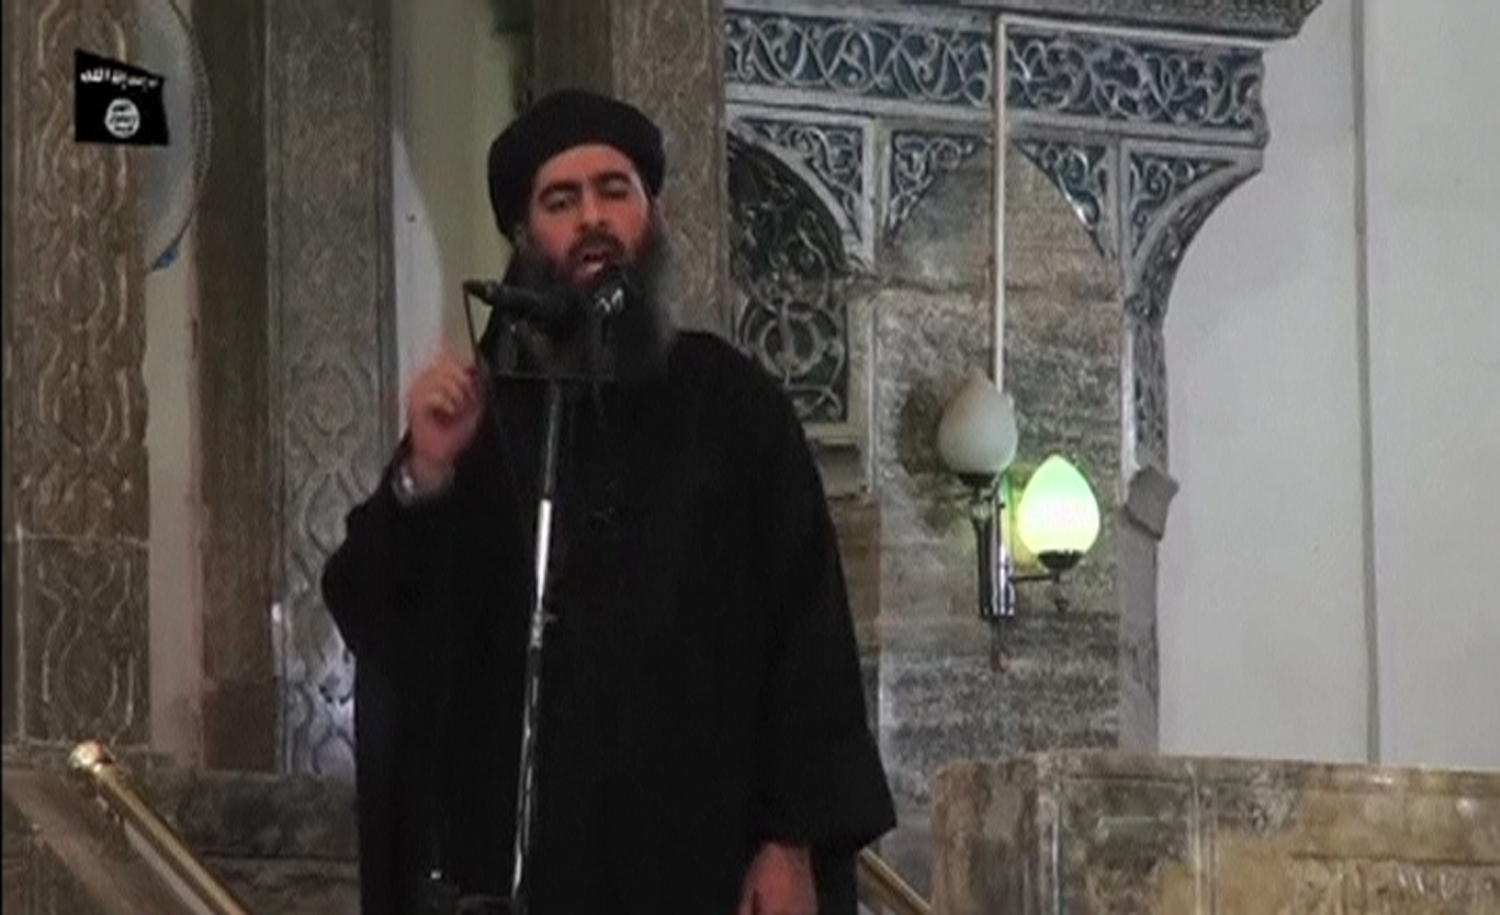 A man purported to be Abu Bakr al-Baghdadi, the leader of the miltant group ISIS, during what would have been his first public appearance at a mosque in Mosul, according to a video recording posted on the Internet.